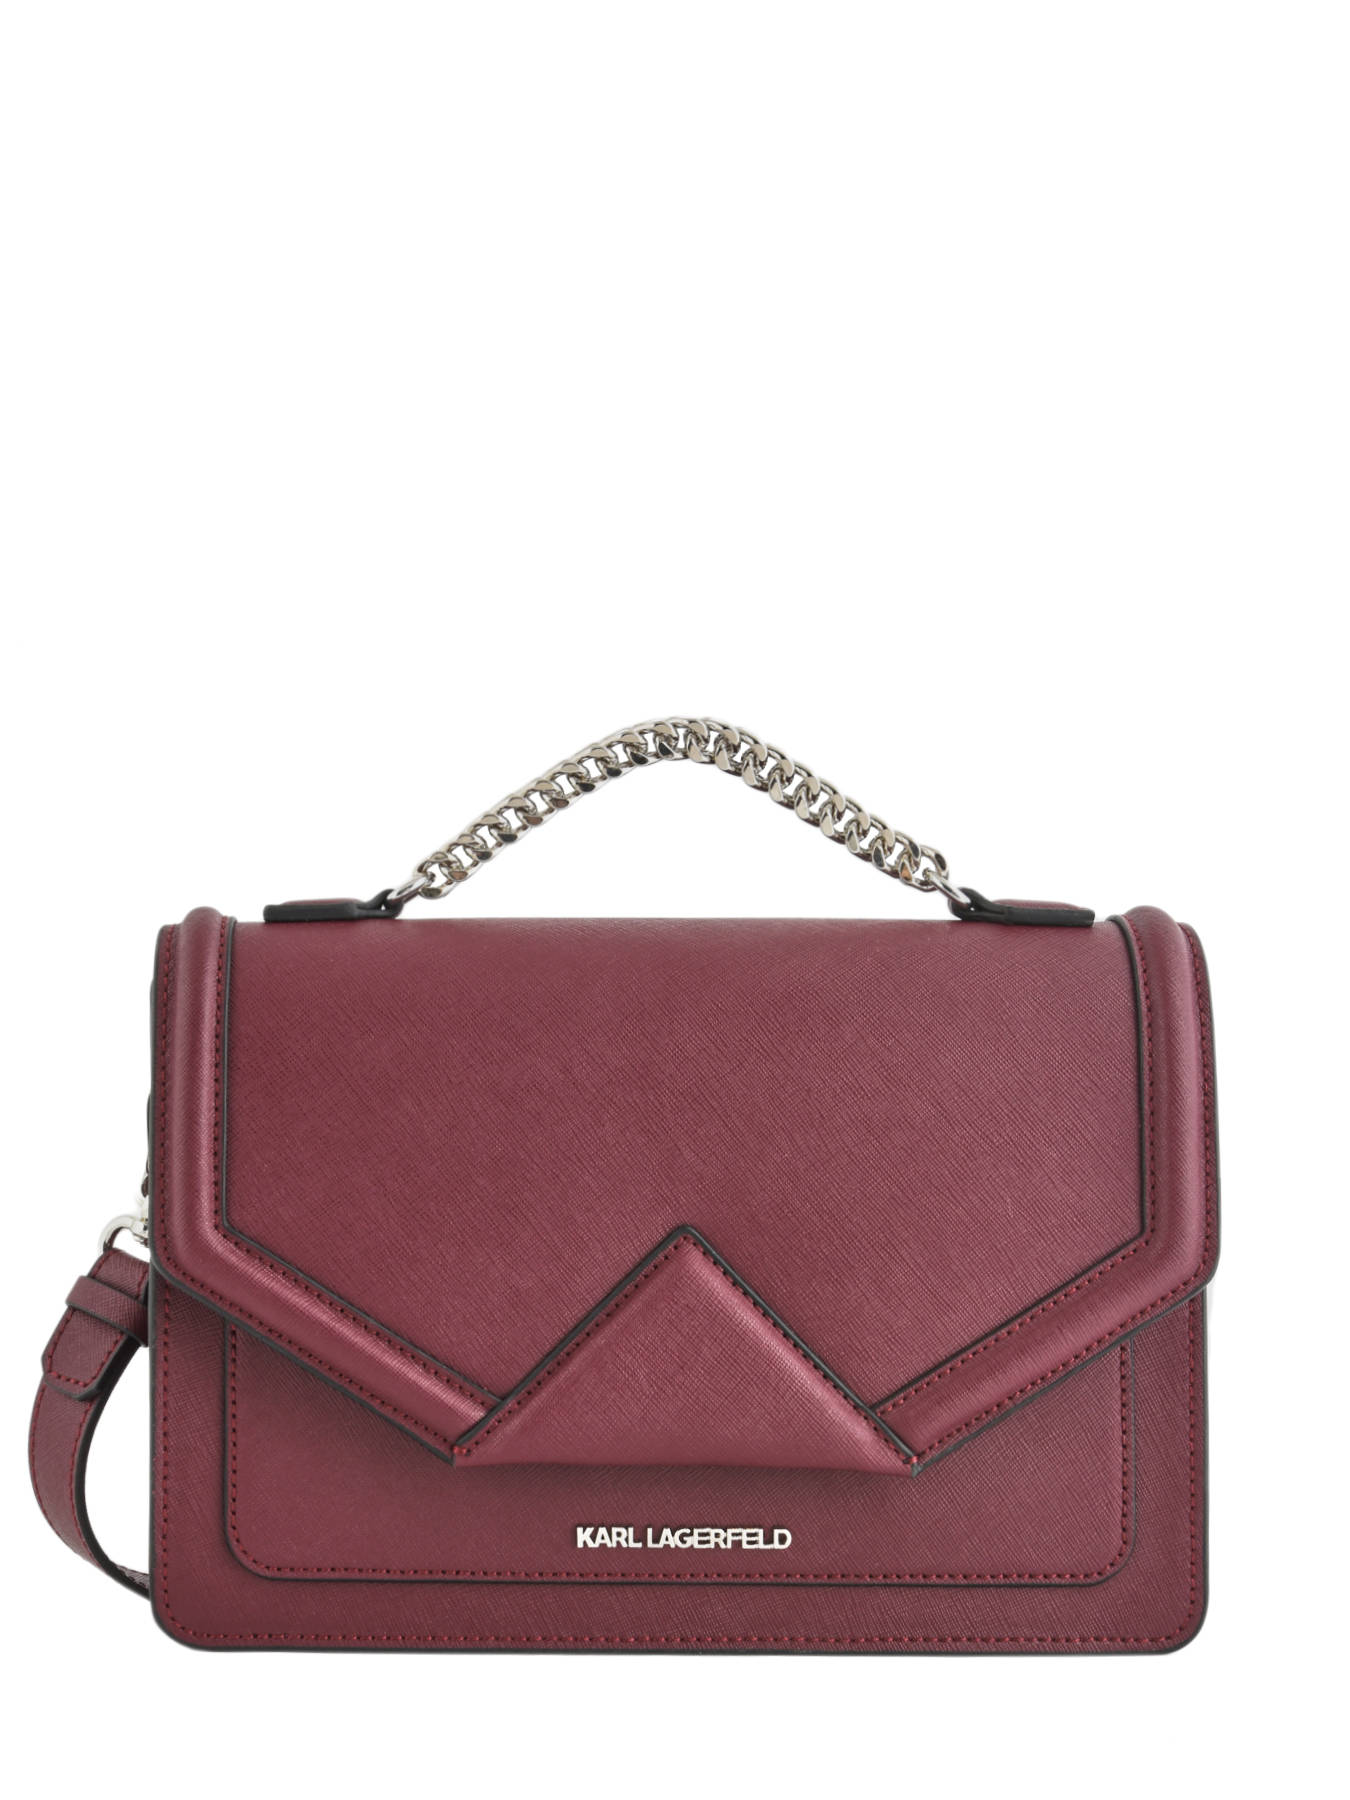 e19e4fe492 ... Shoulder Bag Klassik Leather Karl lagerfeld Red klassik 86KW3002 ...